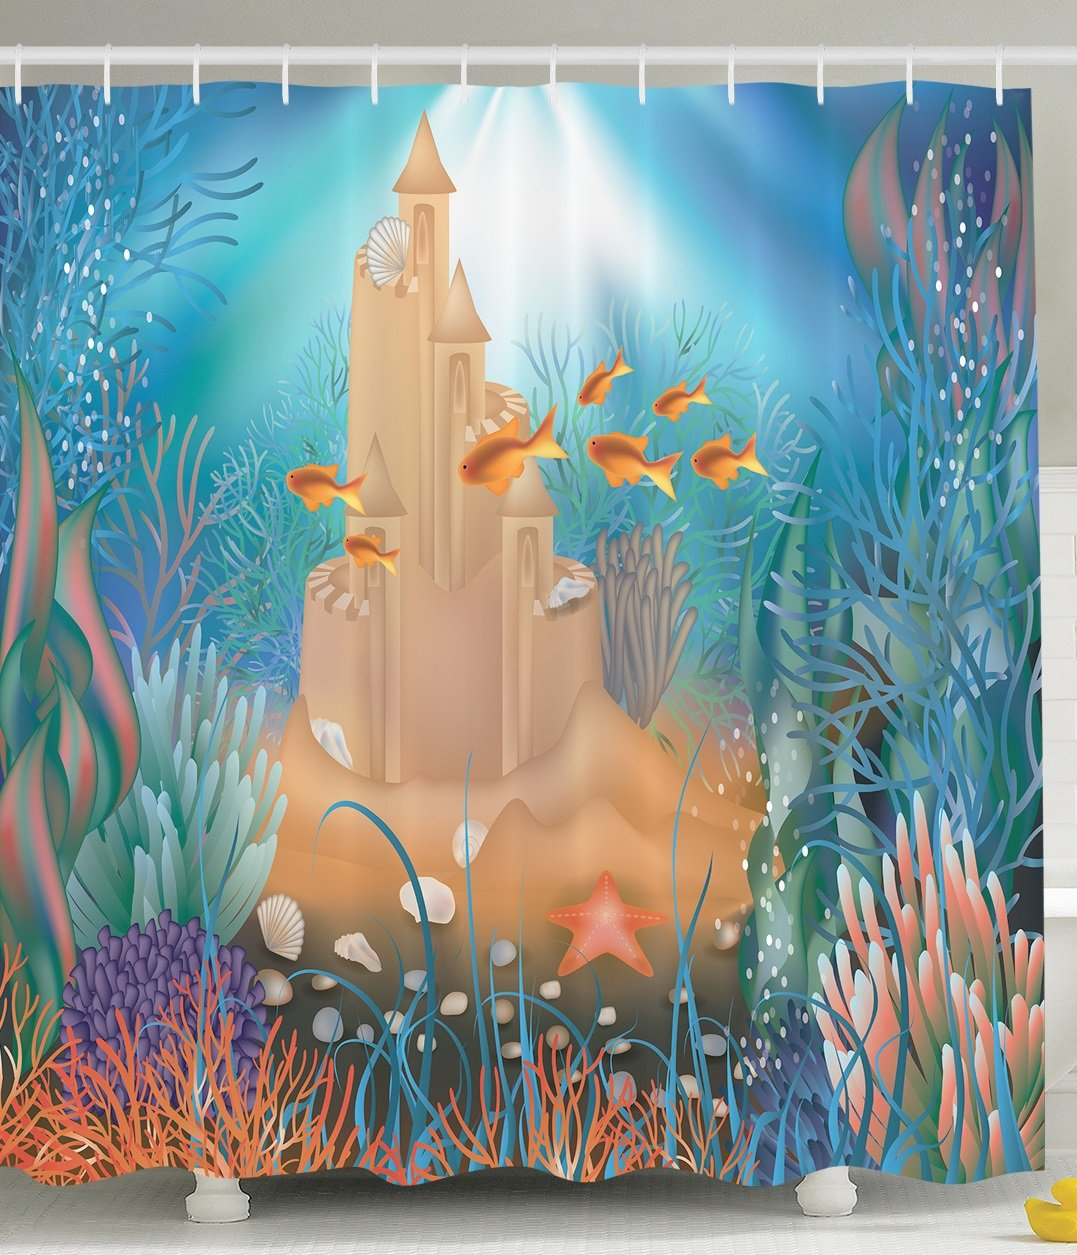 Ocean Decor For Bathroom: Shower Curtain Fish Ocean Sand Castle Nautical Beach